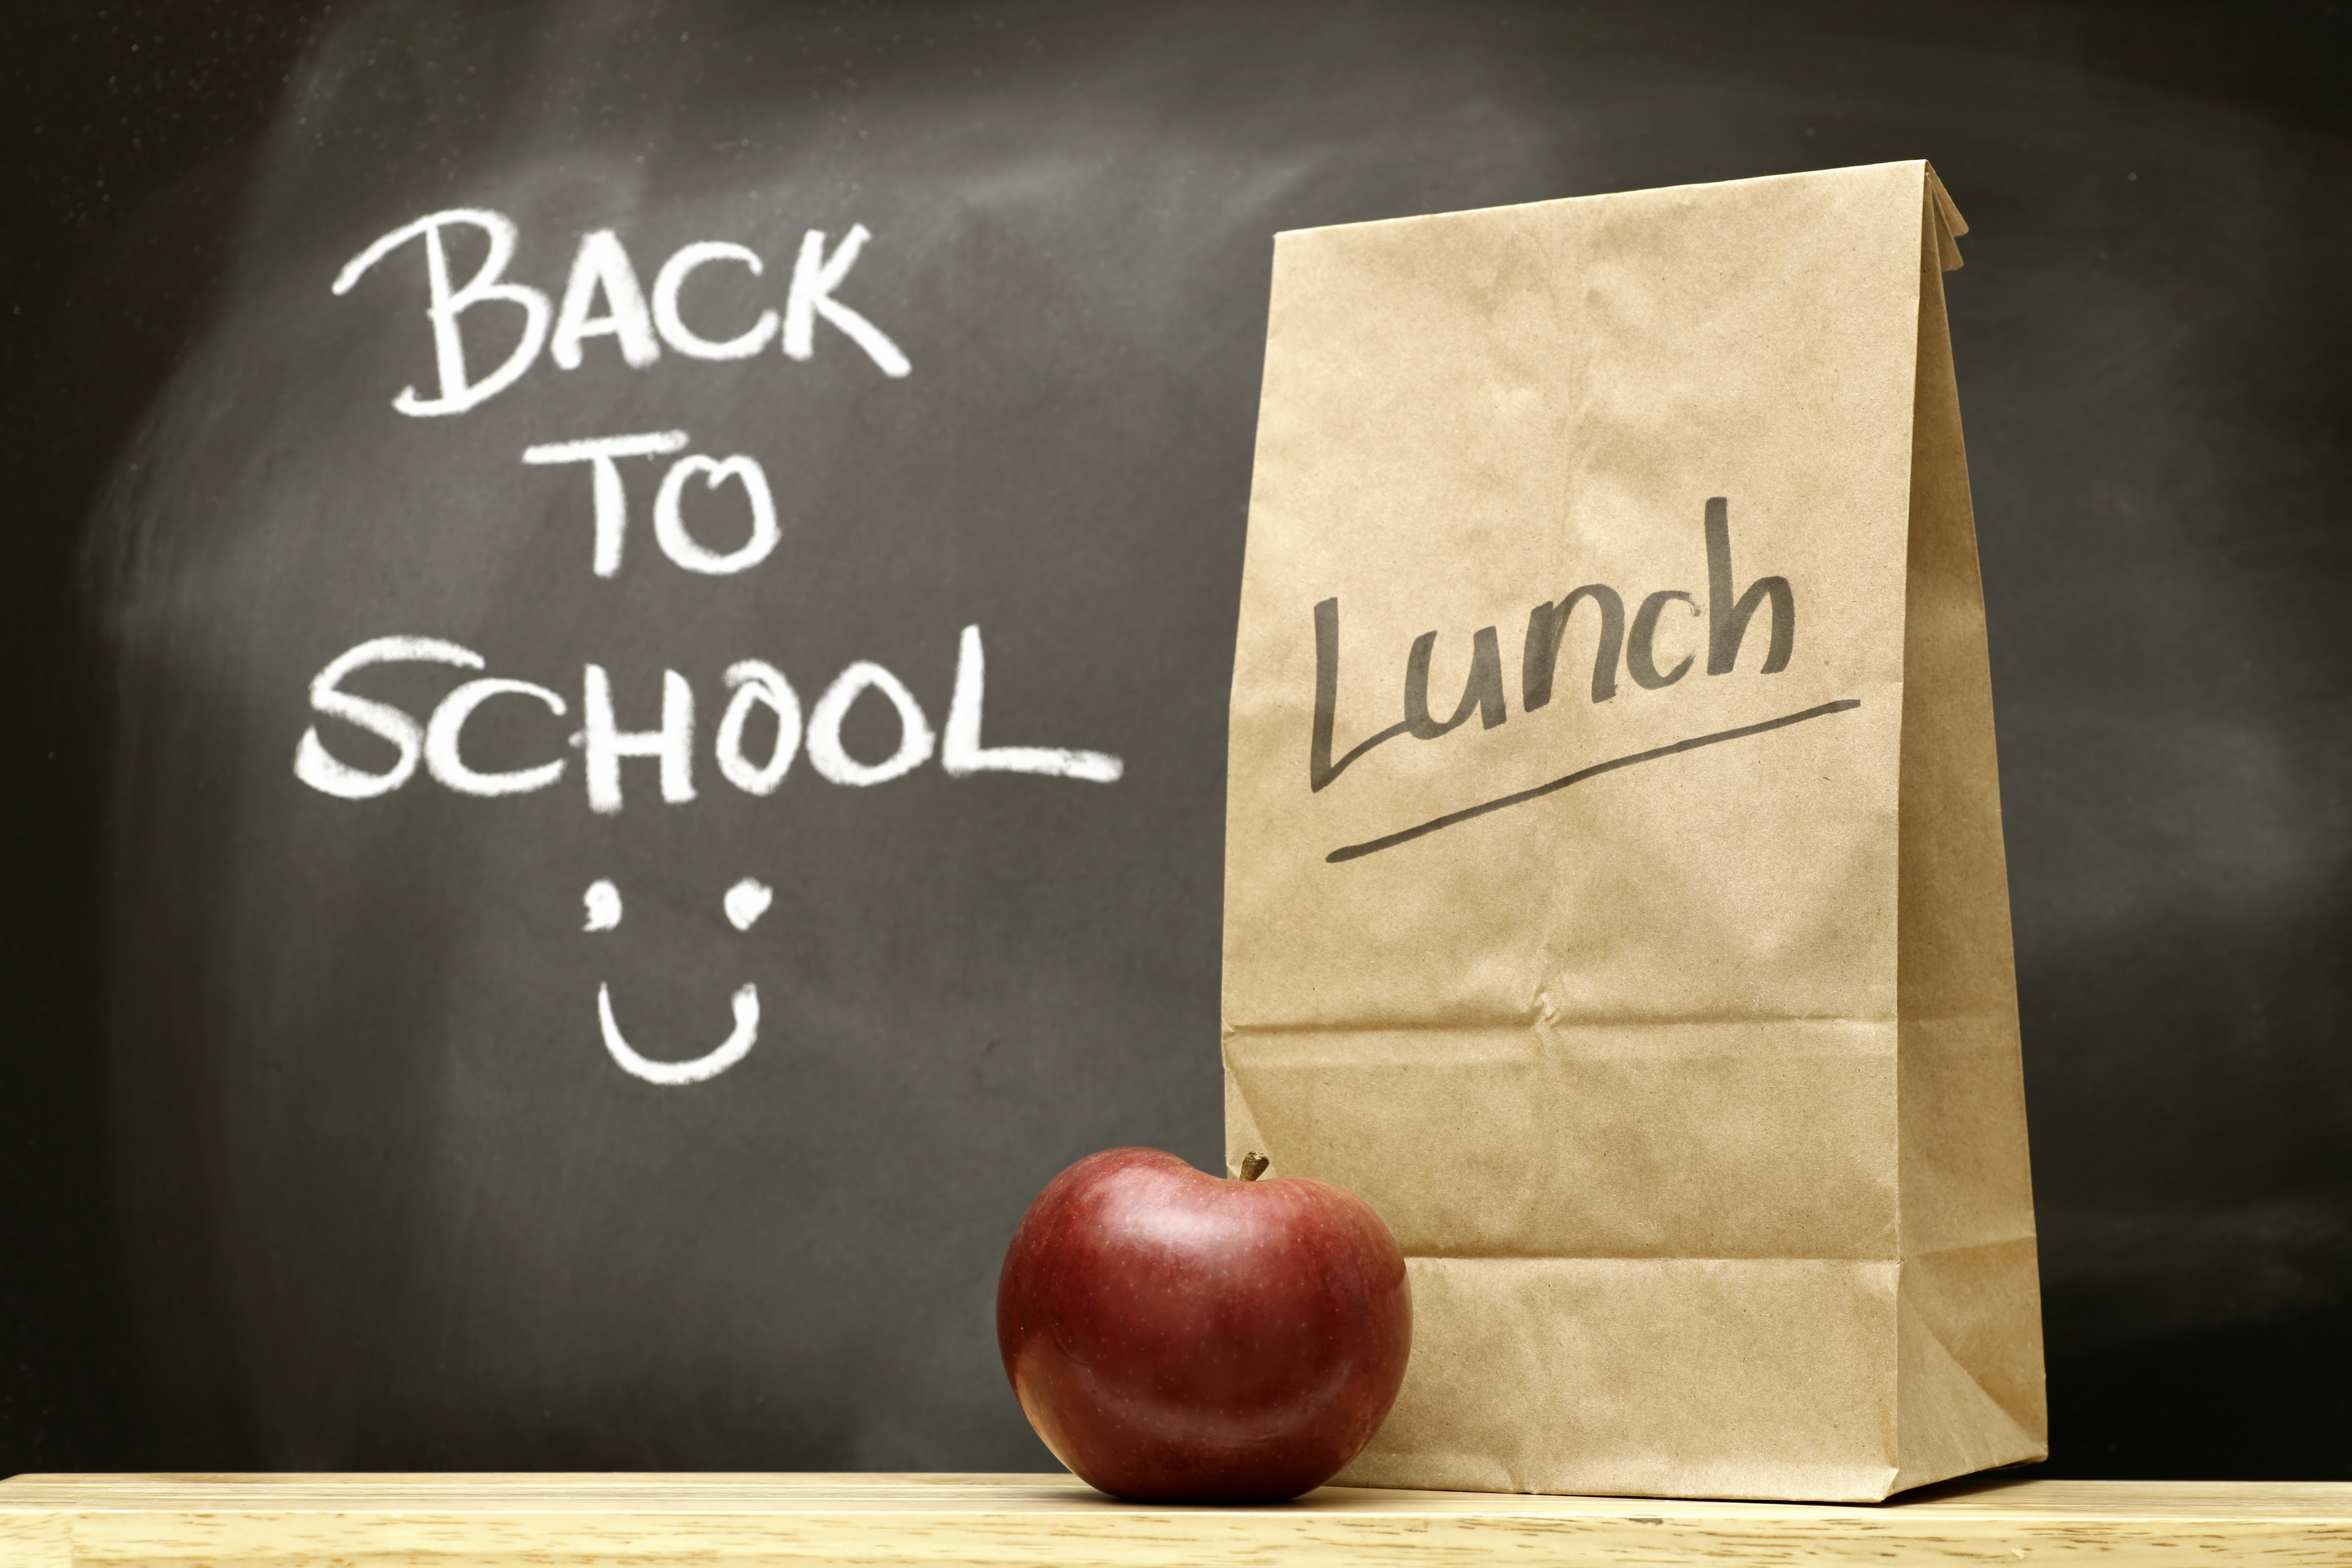 Back to School Lunch Envy